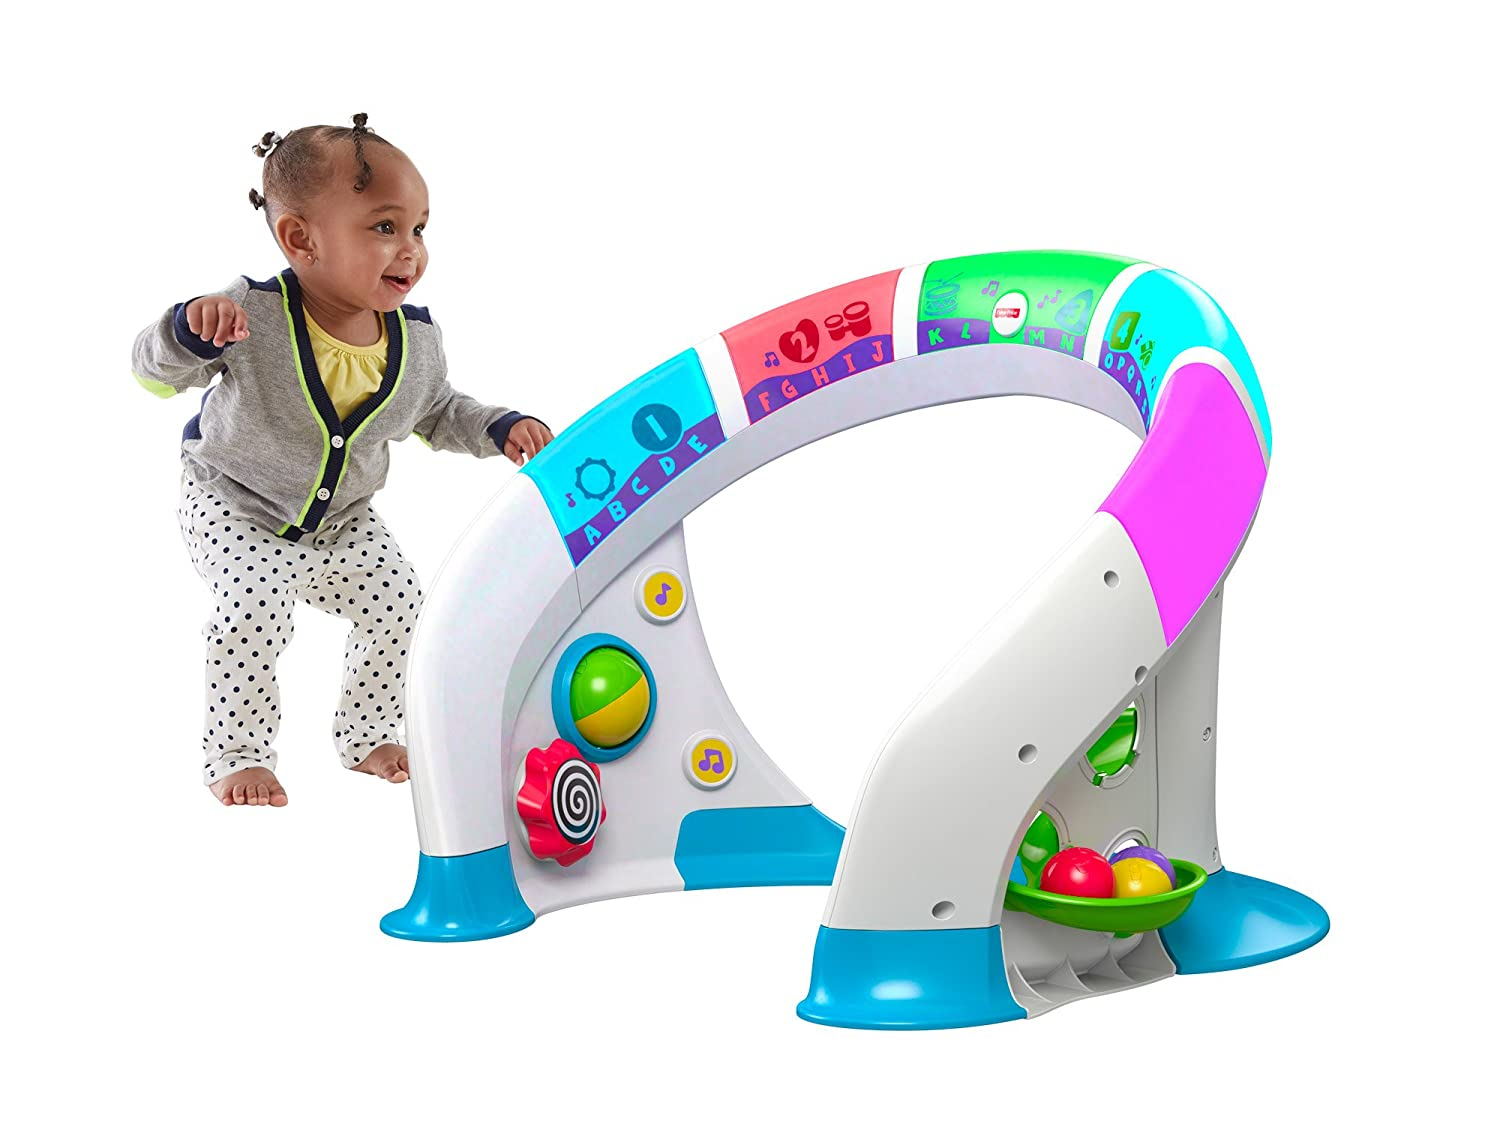 Toddler Educational Toys : Top toys award winning educational for toddlers